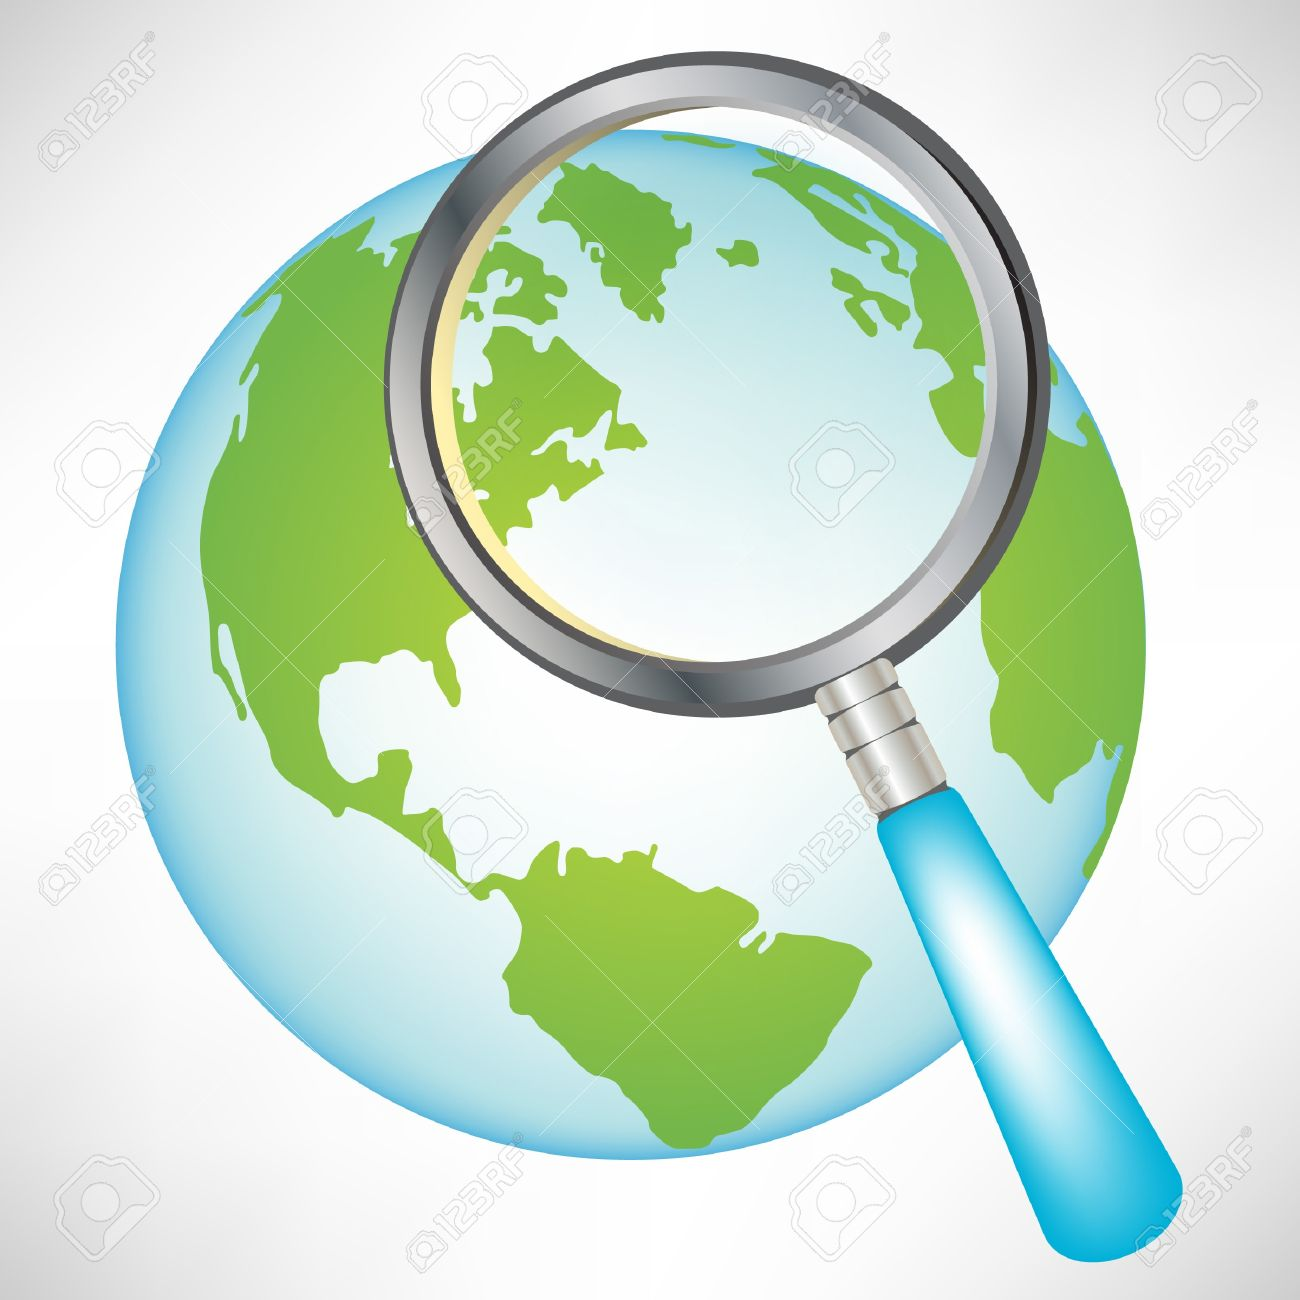 Earth globe with magnifying glass isolated royalty free cliparts earth globe with magnifying glass isolated stock vector 10888213 voltagebd Gallery